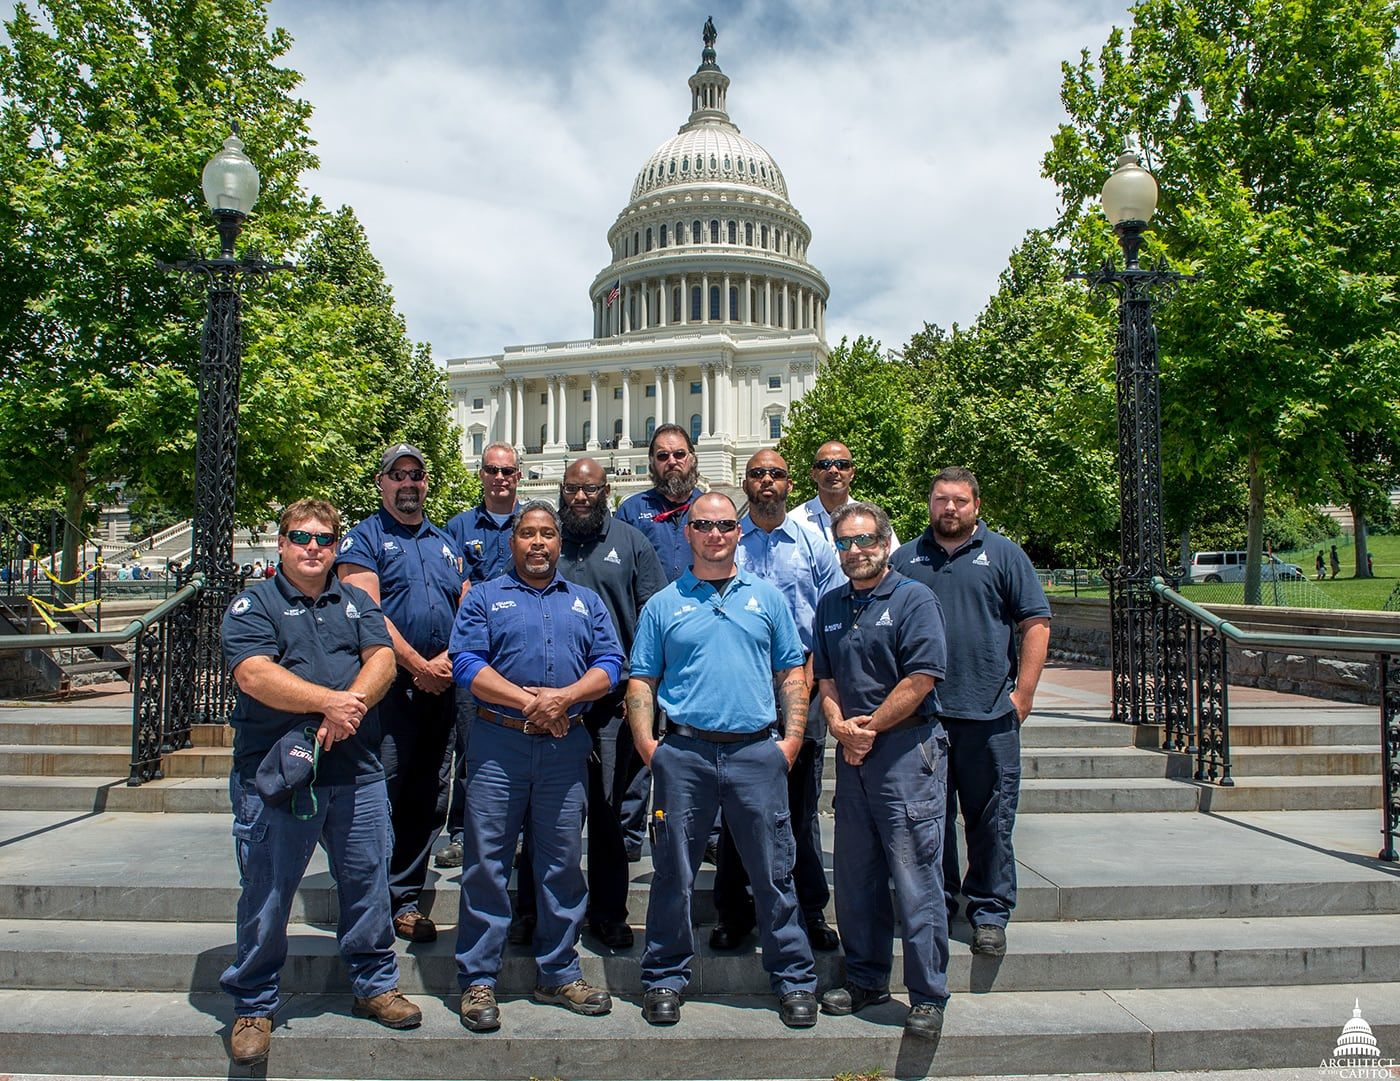 Group photo of the Architect of the Capitol high-voltage electricians on the West Front of the U.S. Capitol.